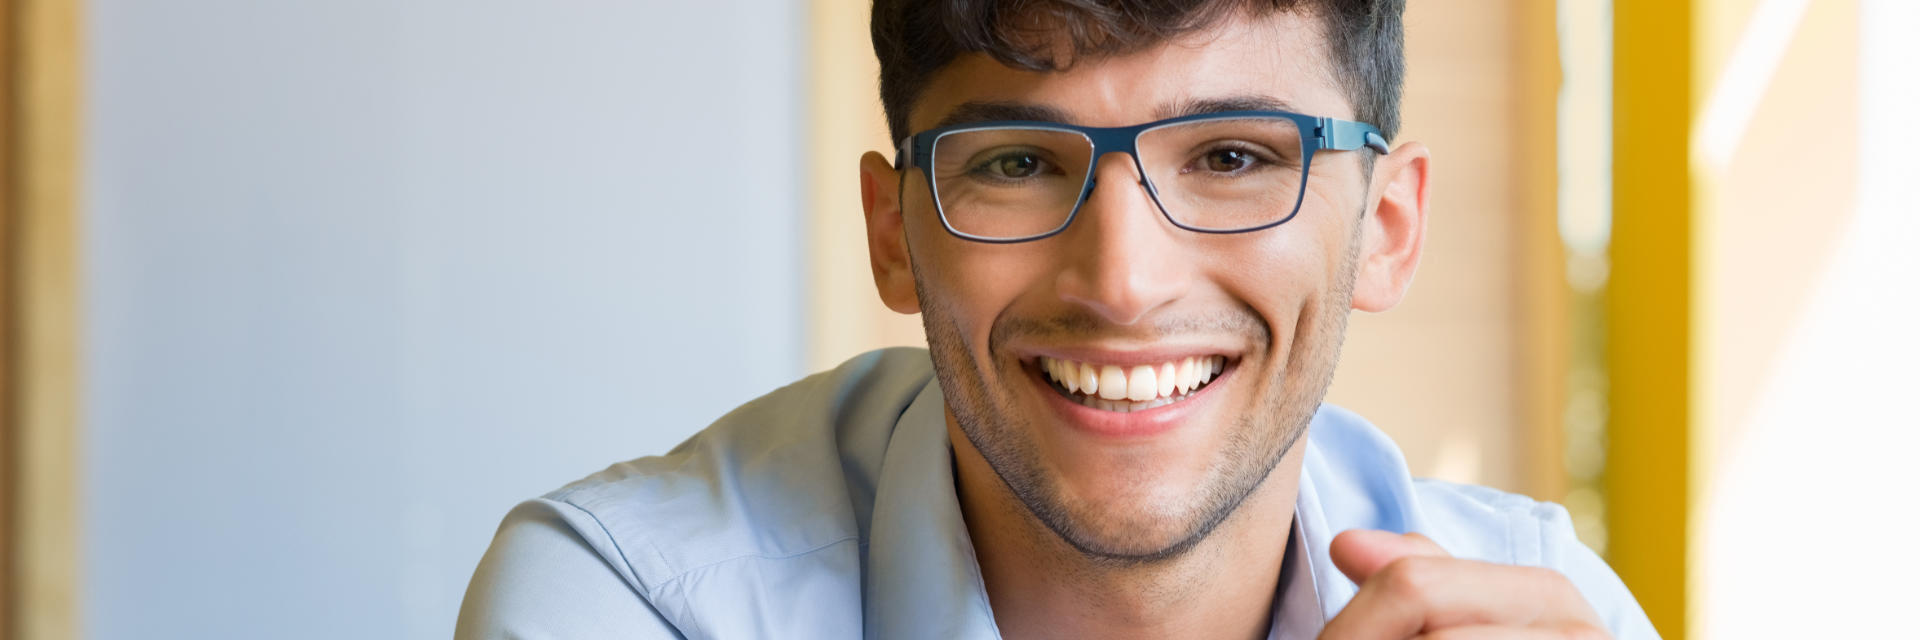 Young man wearing glasses with perfect smile.